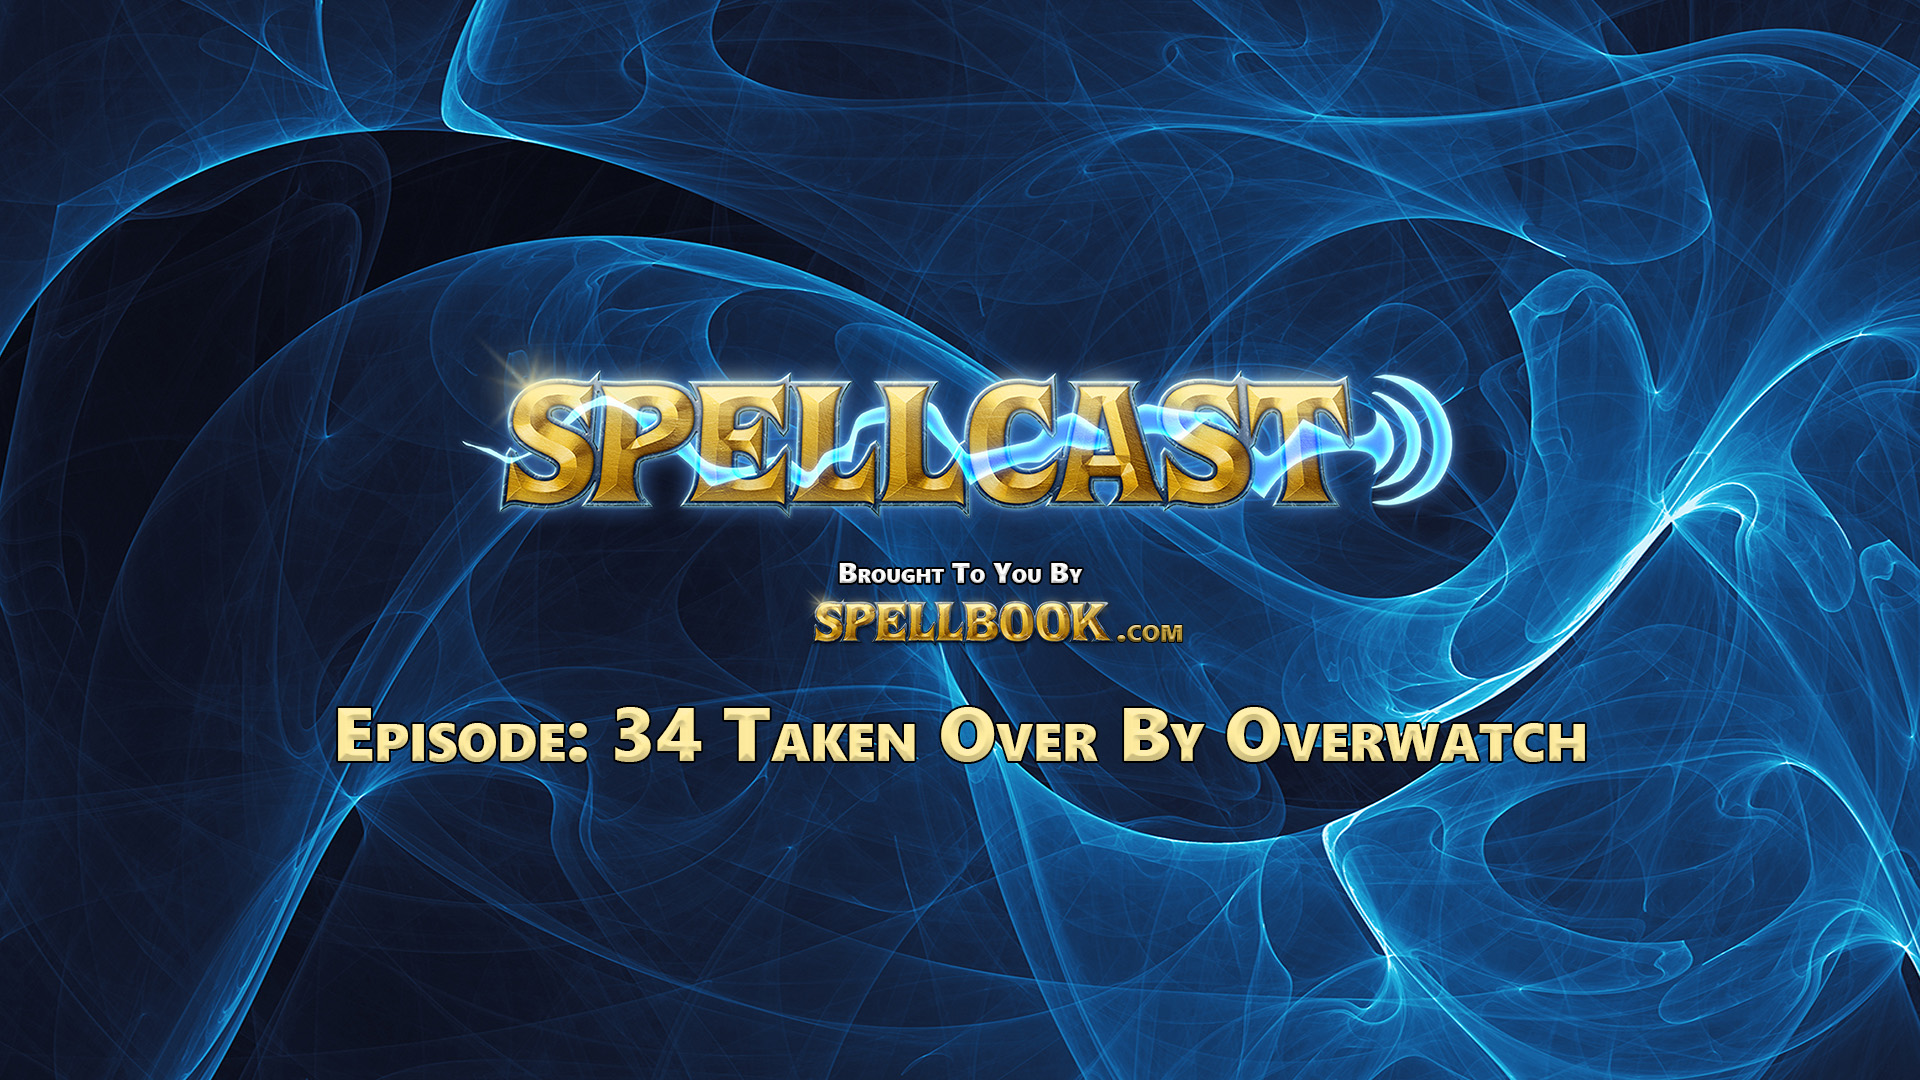 Spellcast Episode: 34 - Taken Over By Overwatch